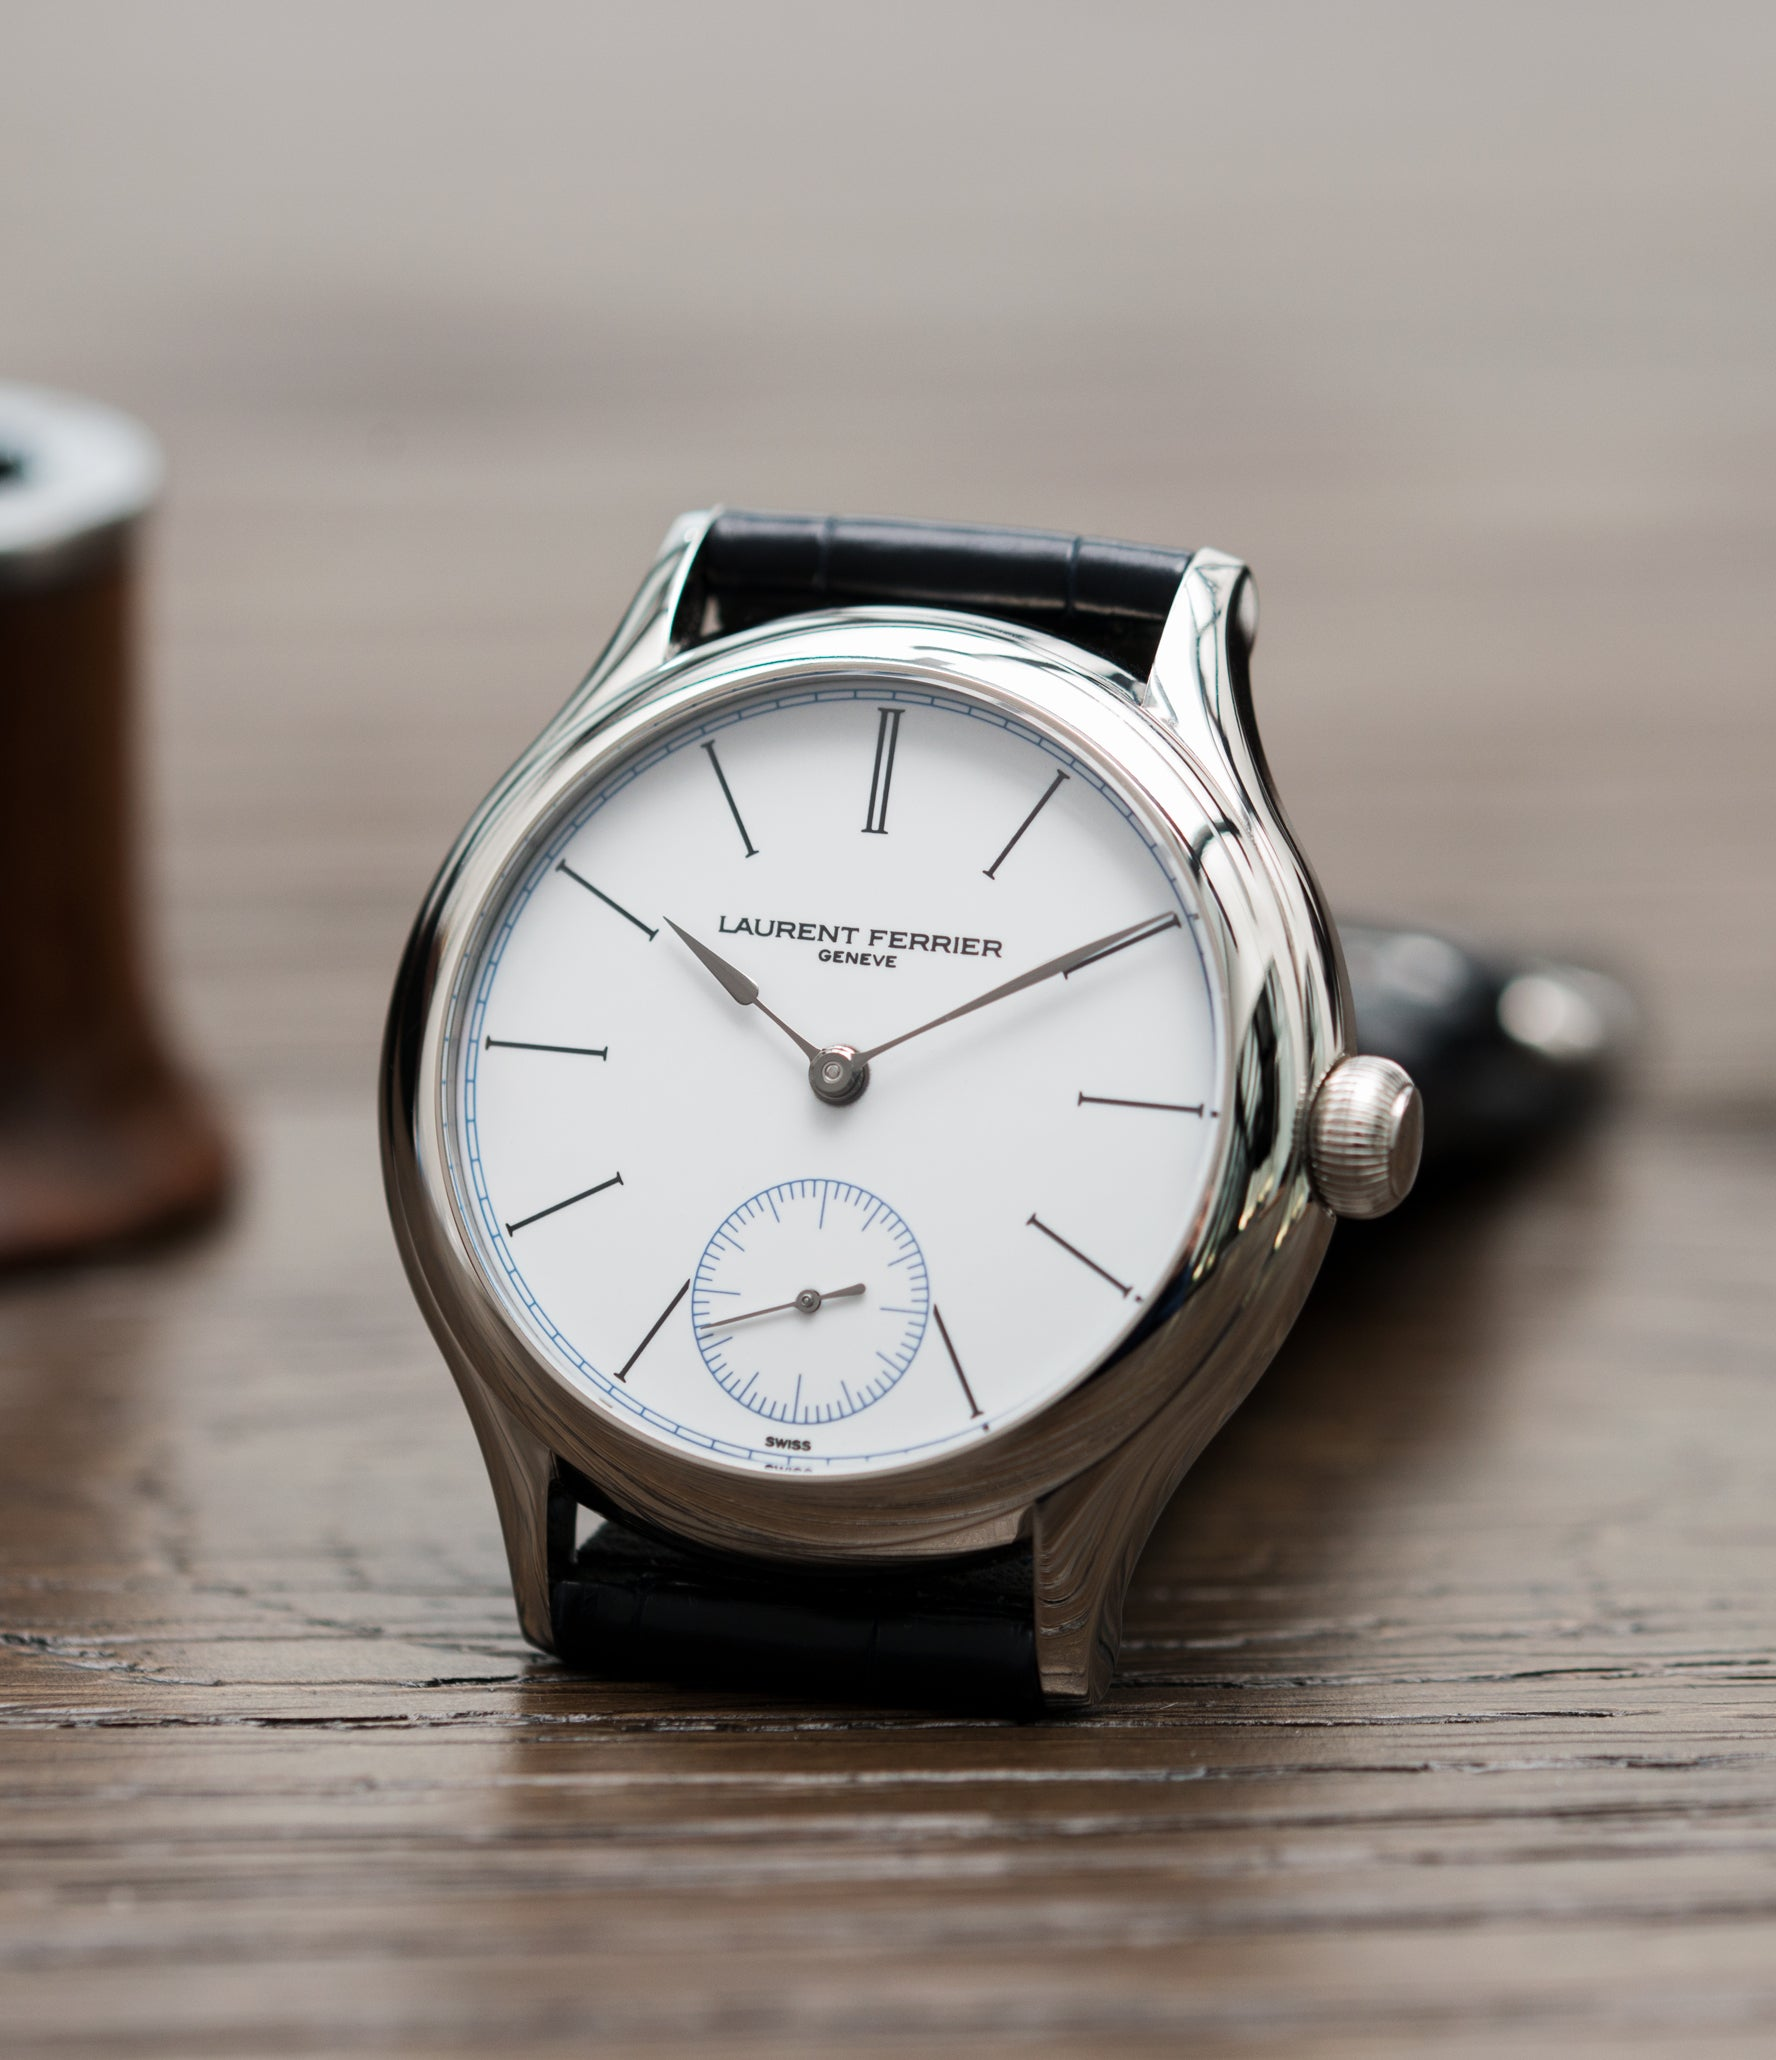 selling Laurent Ferrier Galet Micro-Rotor FBN 230.02 Enamel dial steel watch for sale online at A Collected Man London UK approved seller of independent watchmaker Laurent Ferrier